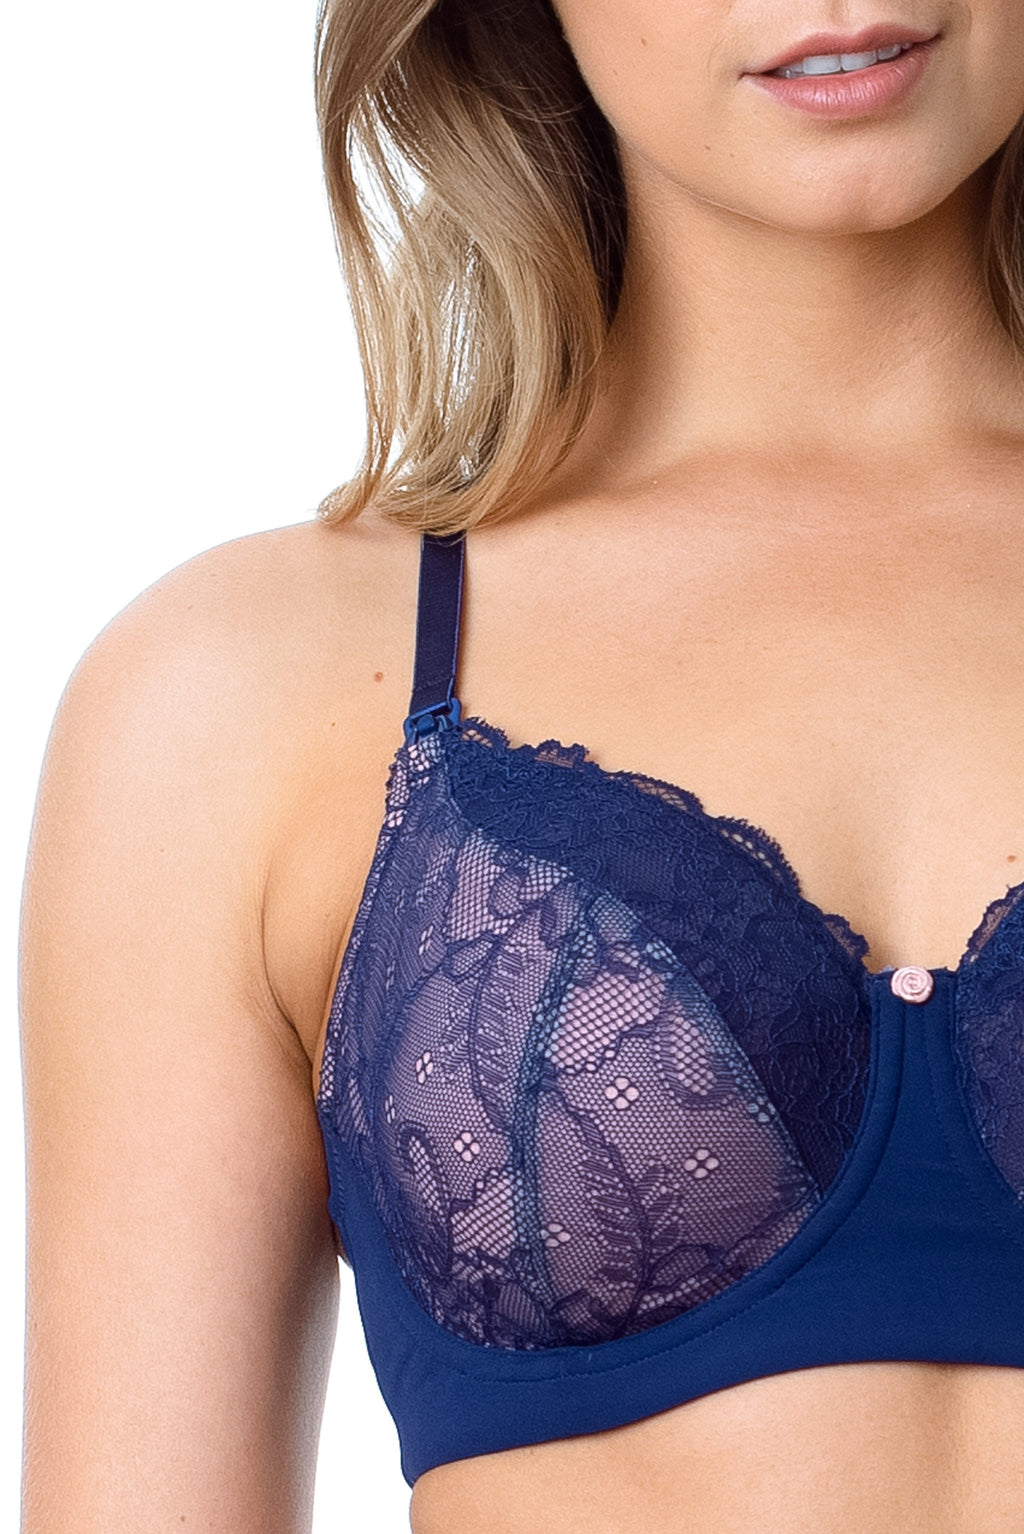 hotmilk temptation navy nursing bra